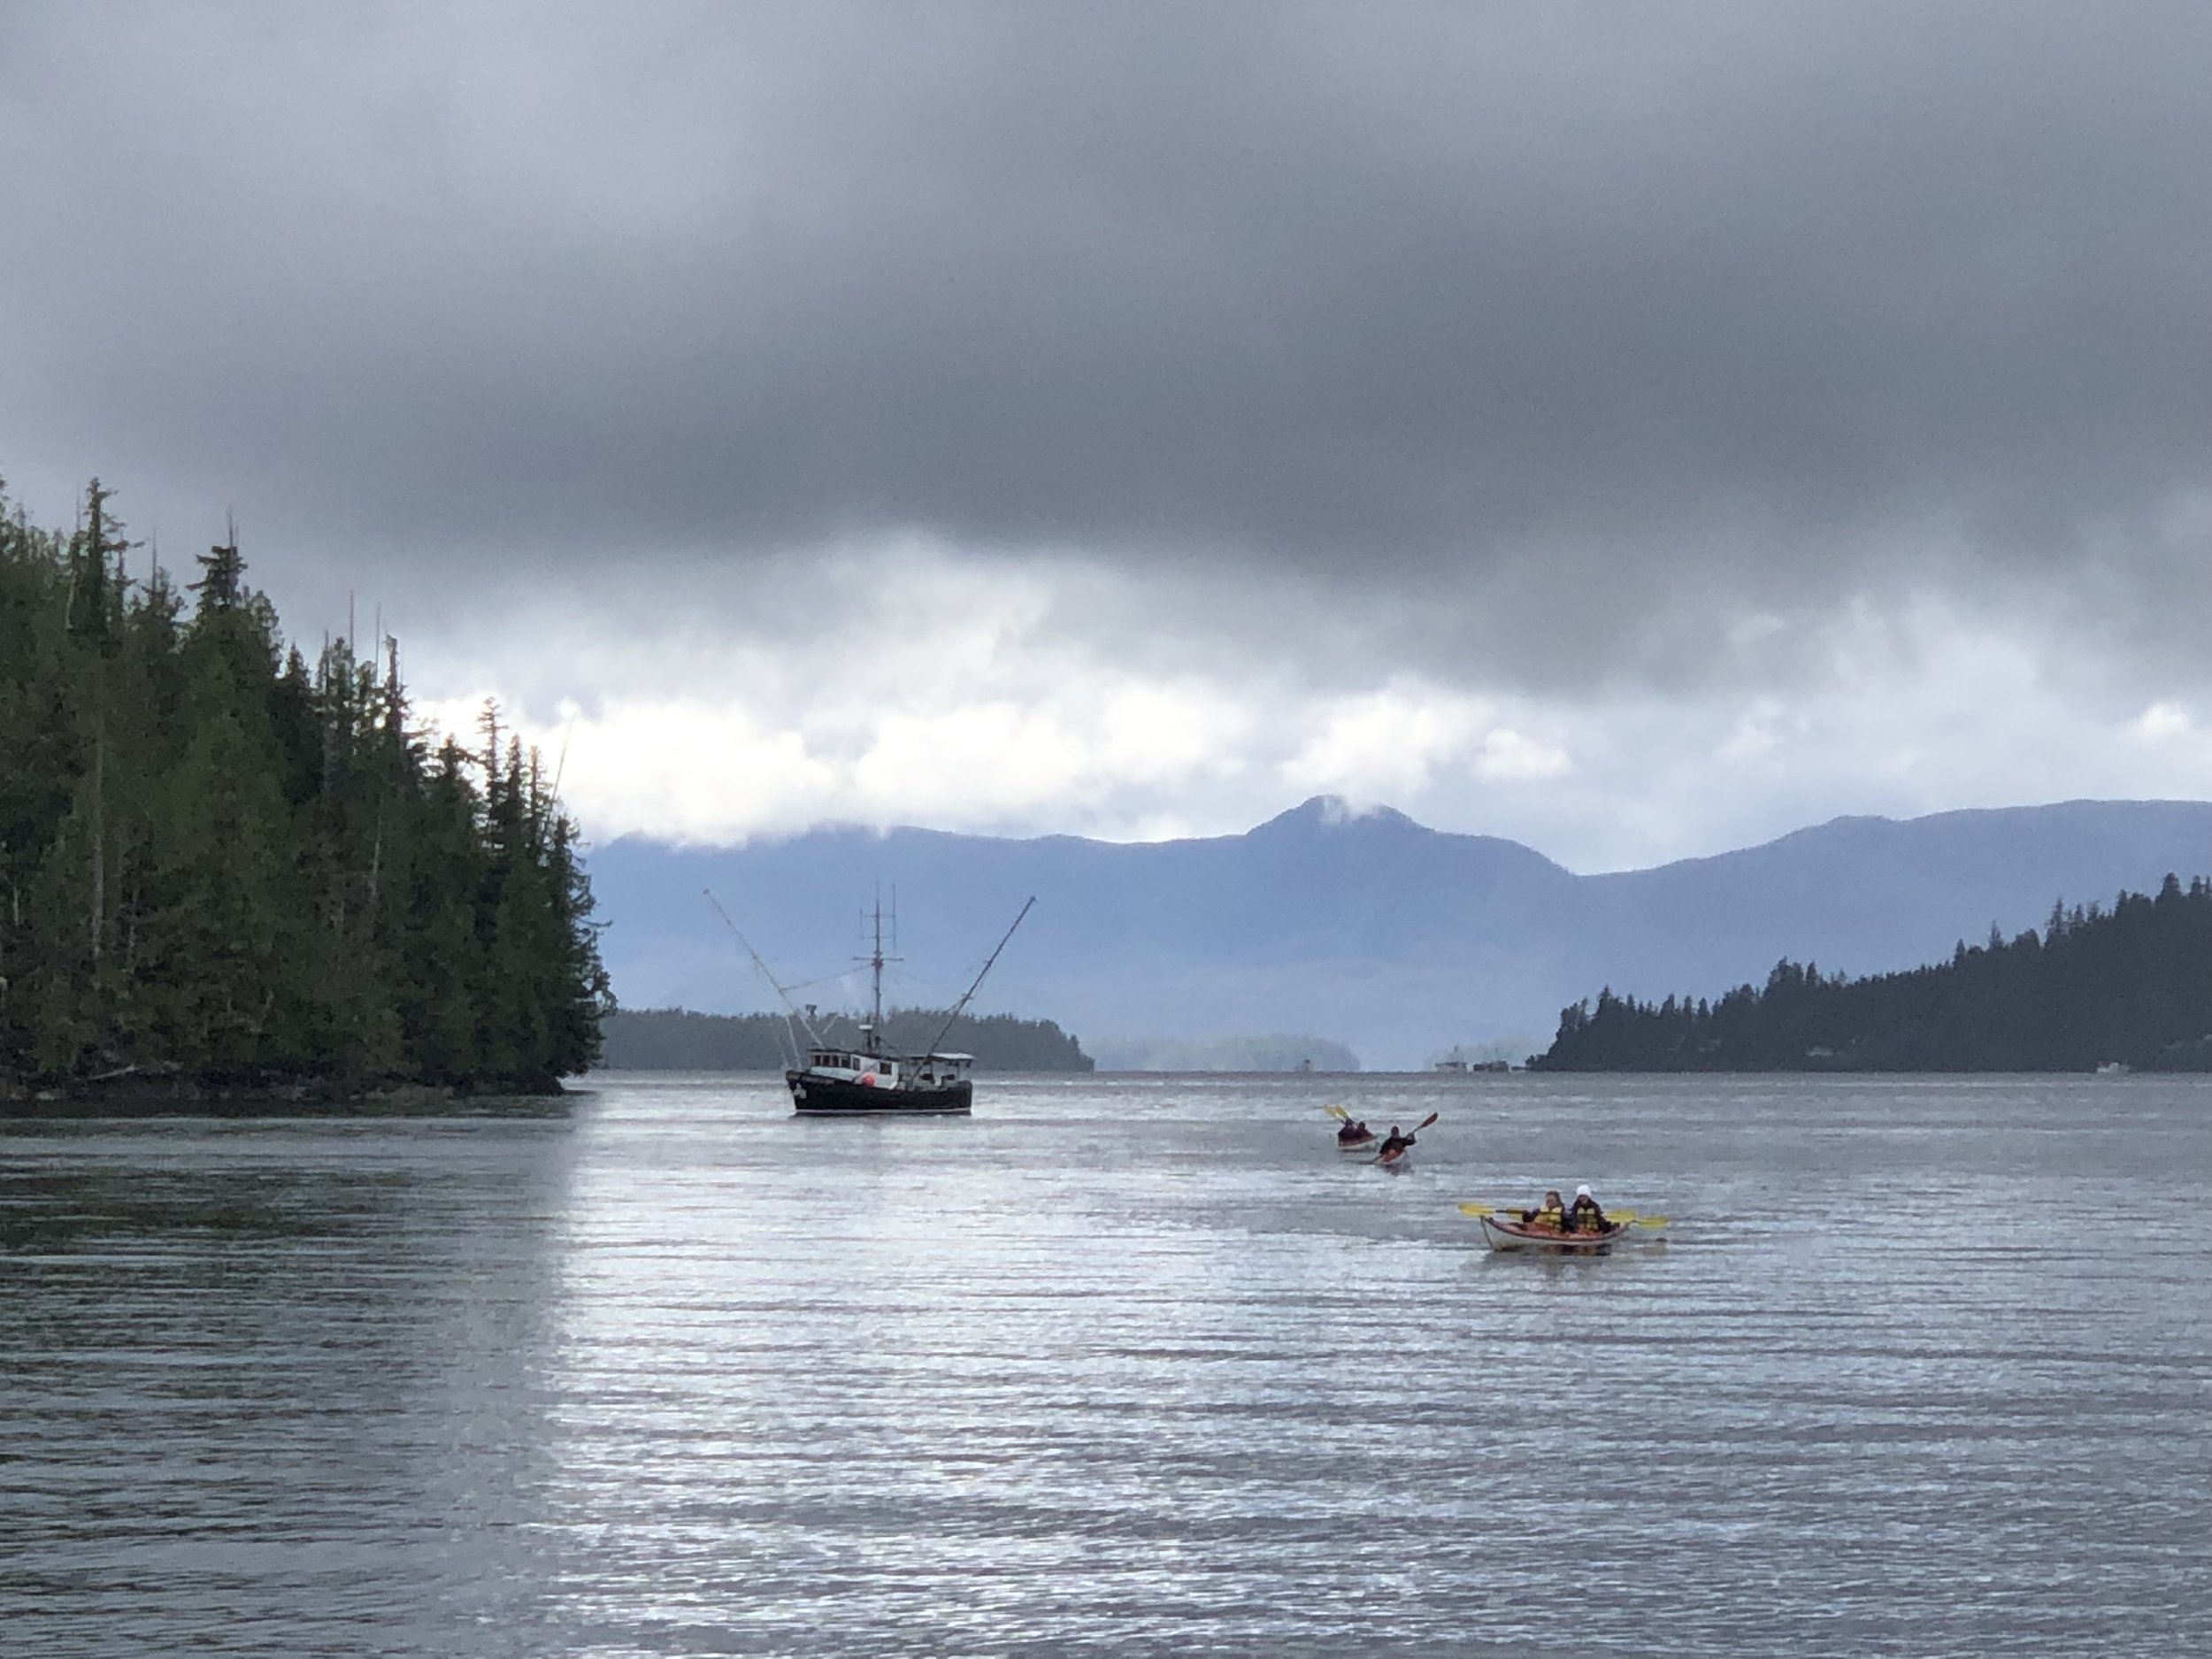 Orcas Cove paddlers coming back from around Carroll Point past a commercial salmon trolling boat.